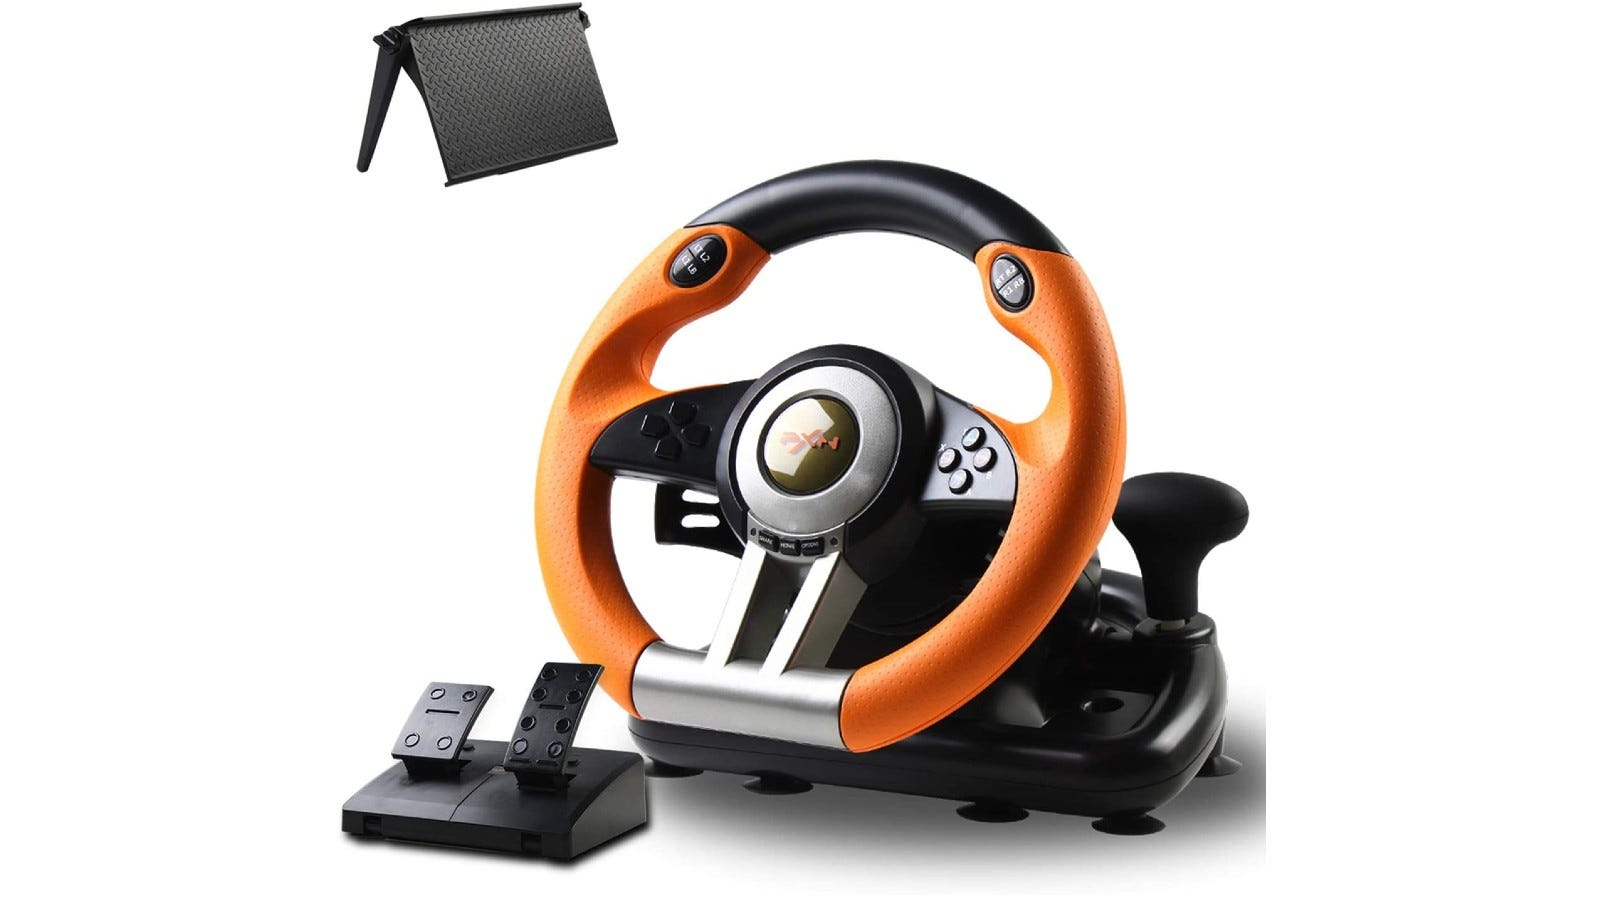 A competition racing wheel with realistic steering